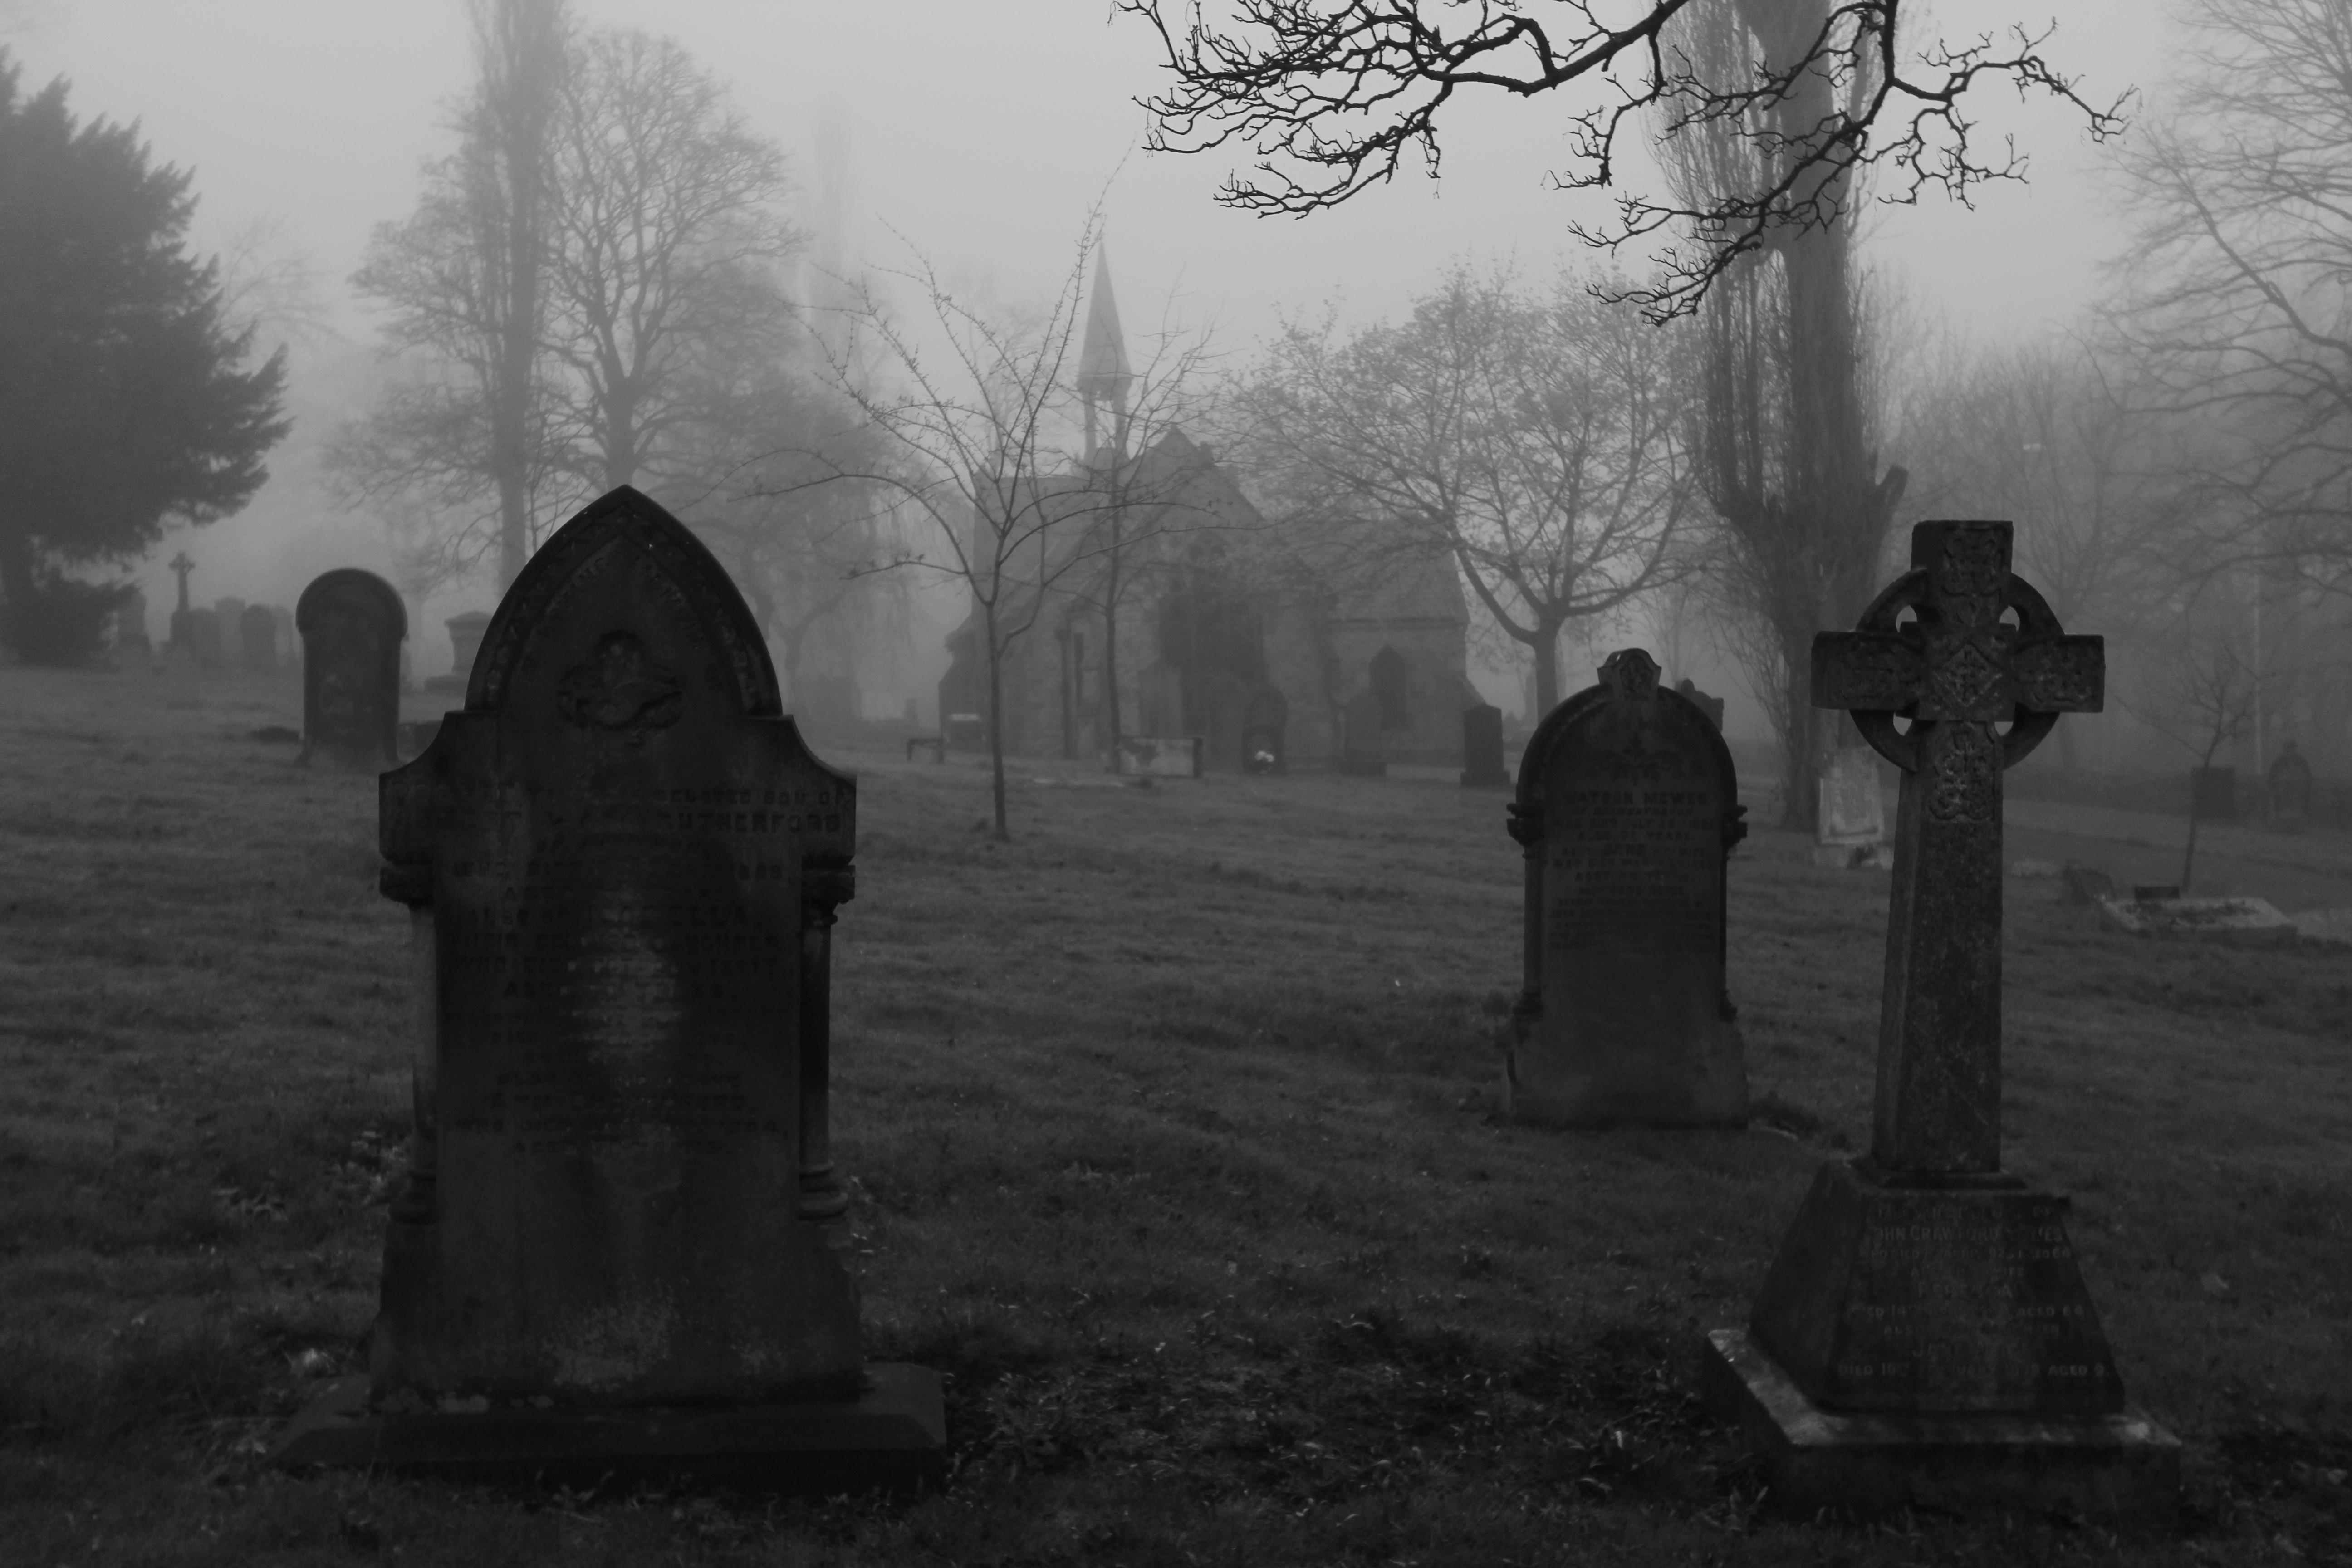 Cemetery Wallpapers - Wallpaper Cave